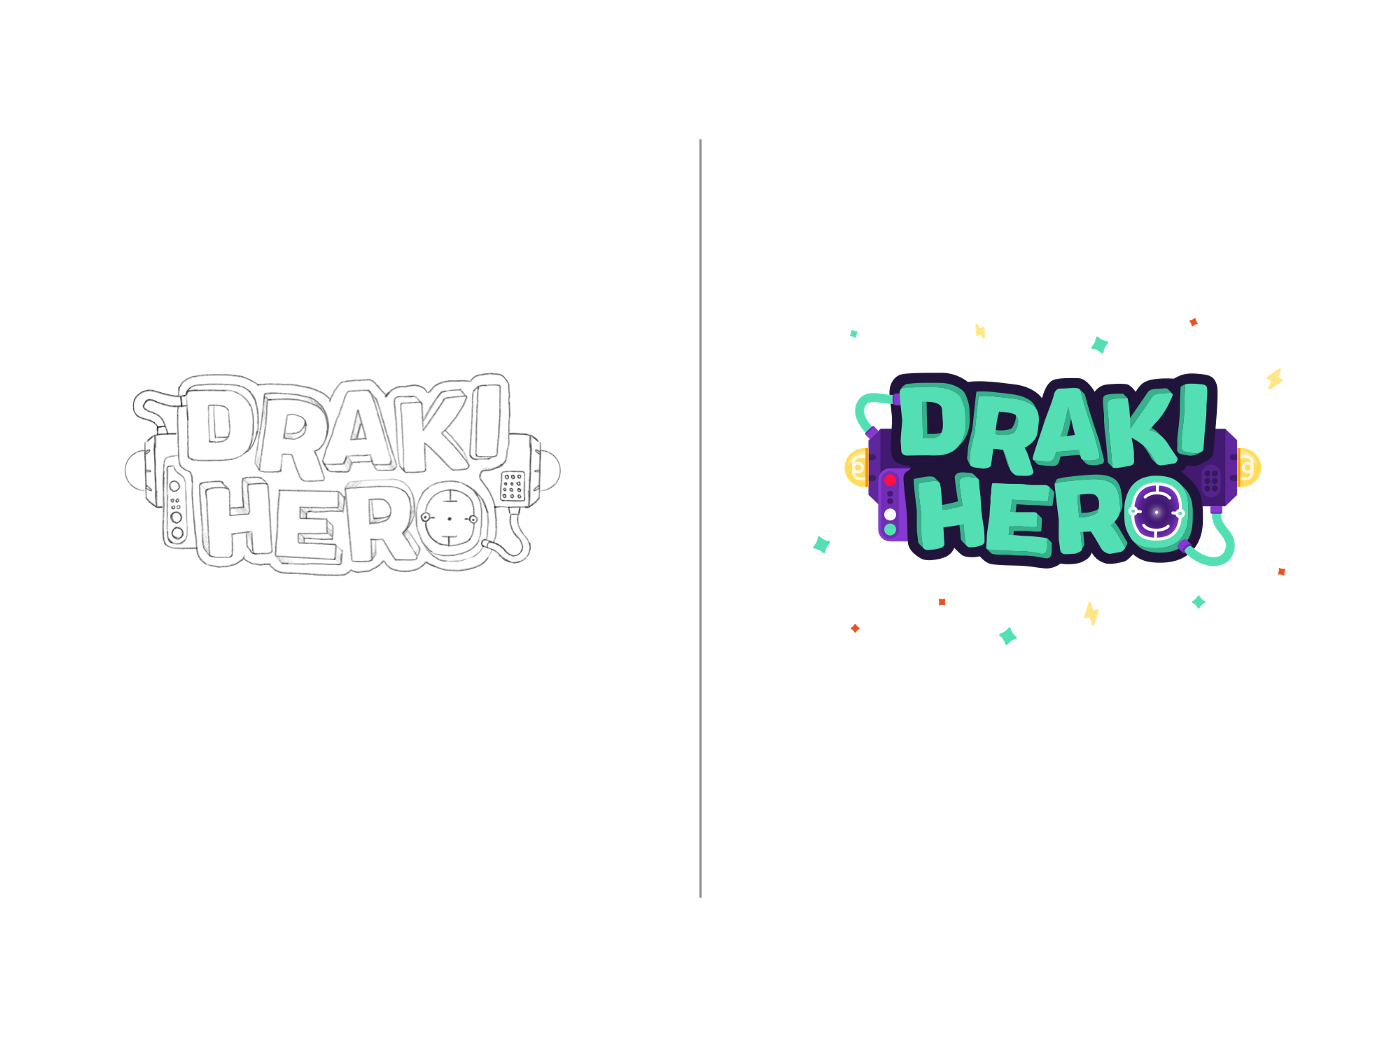 Draft and final version of Draki Hero's logo.